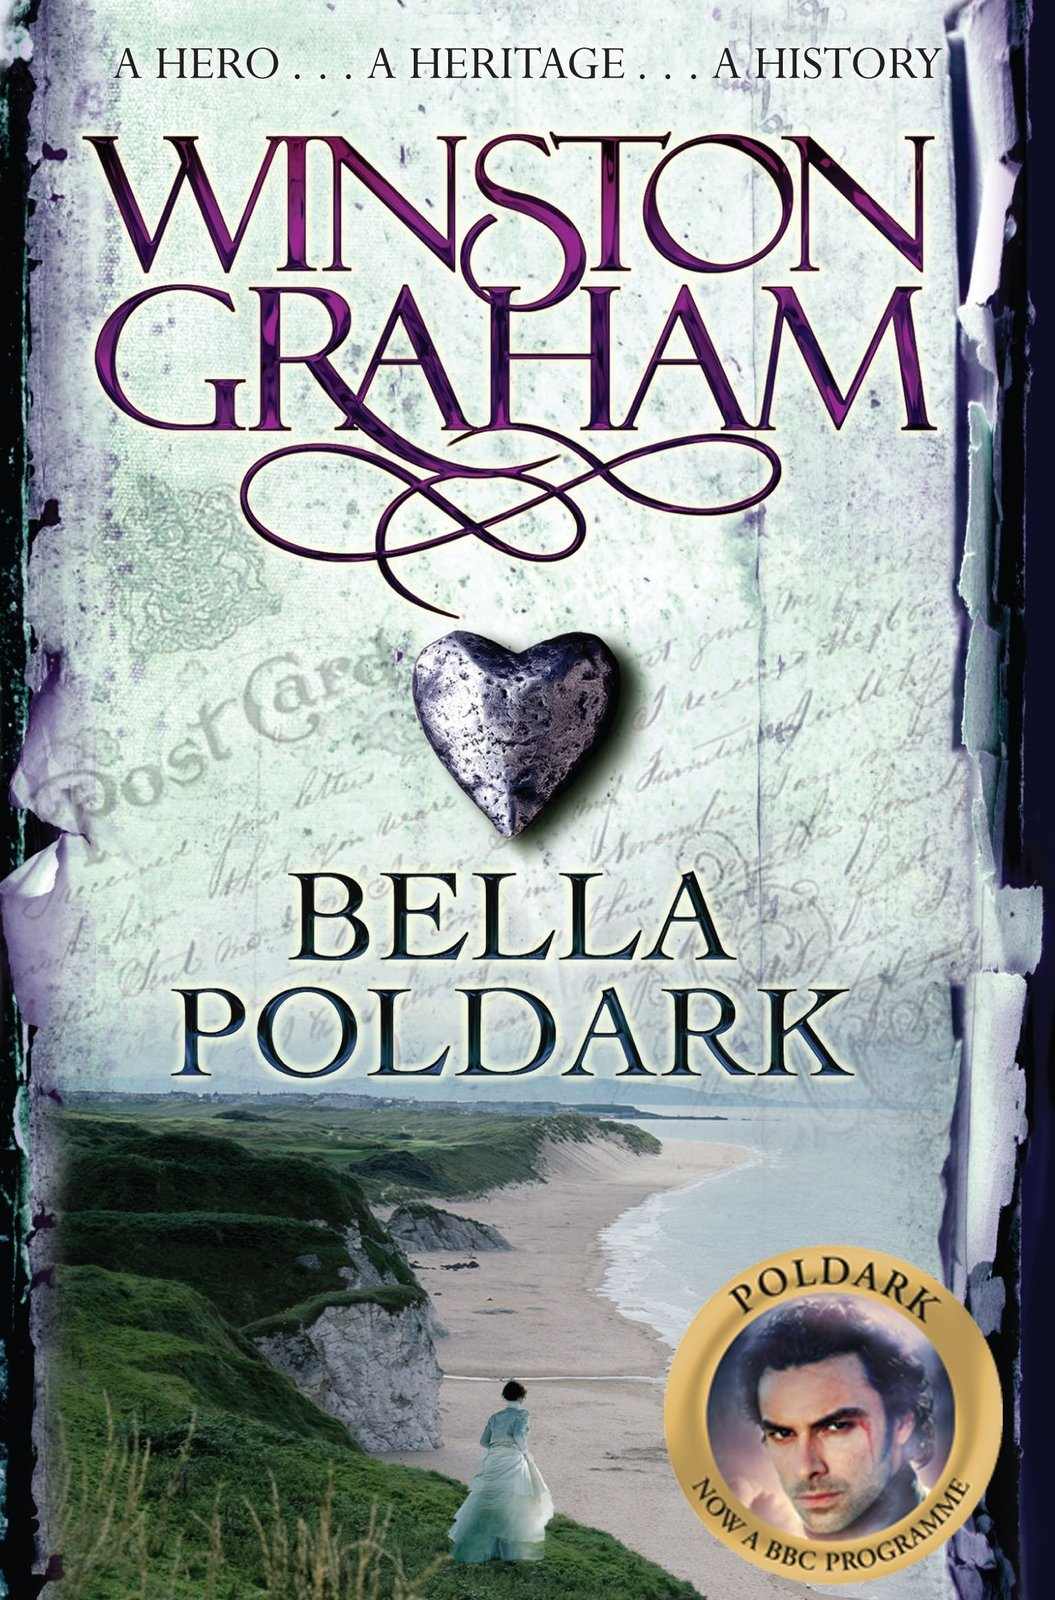 Bella Poldark by Winston Graham image